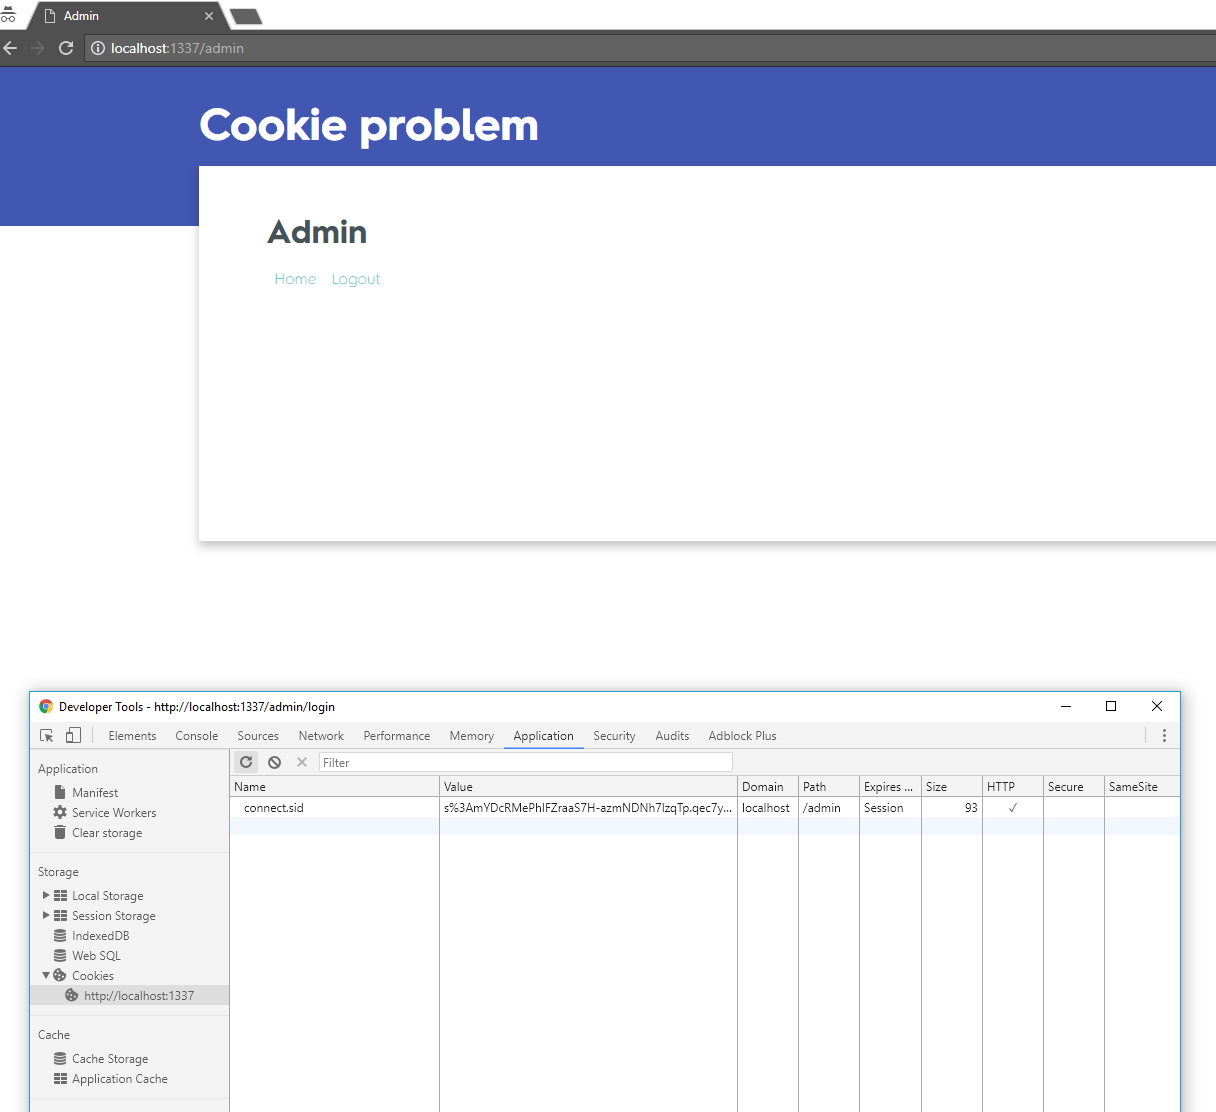 I can't delete the session ID cookie after destroying the